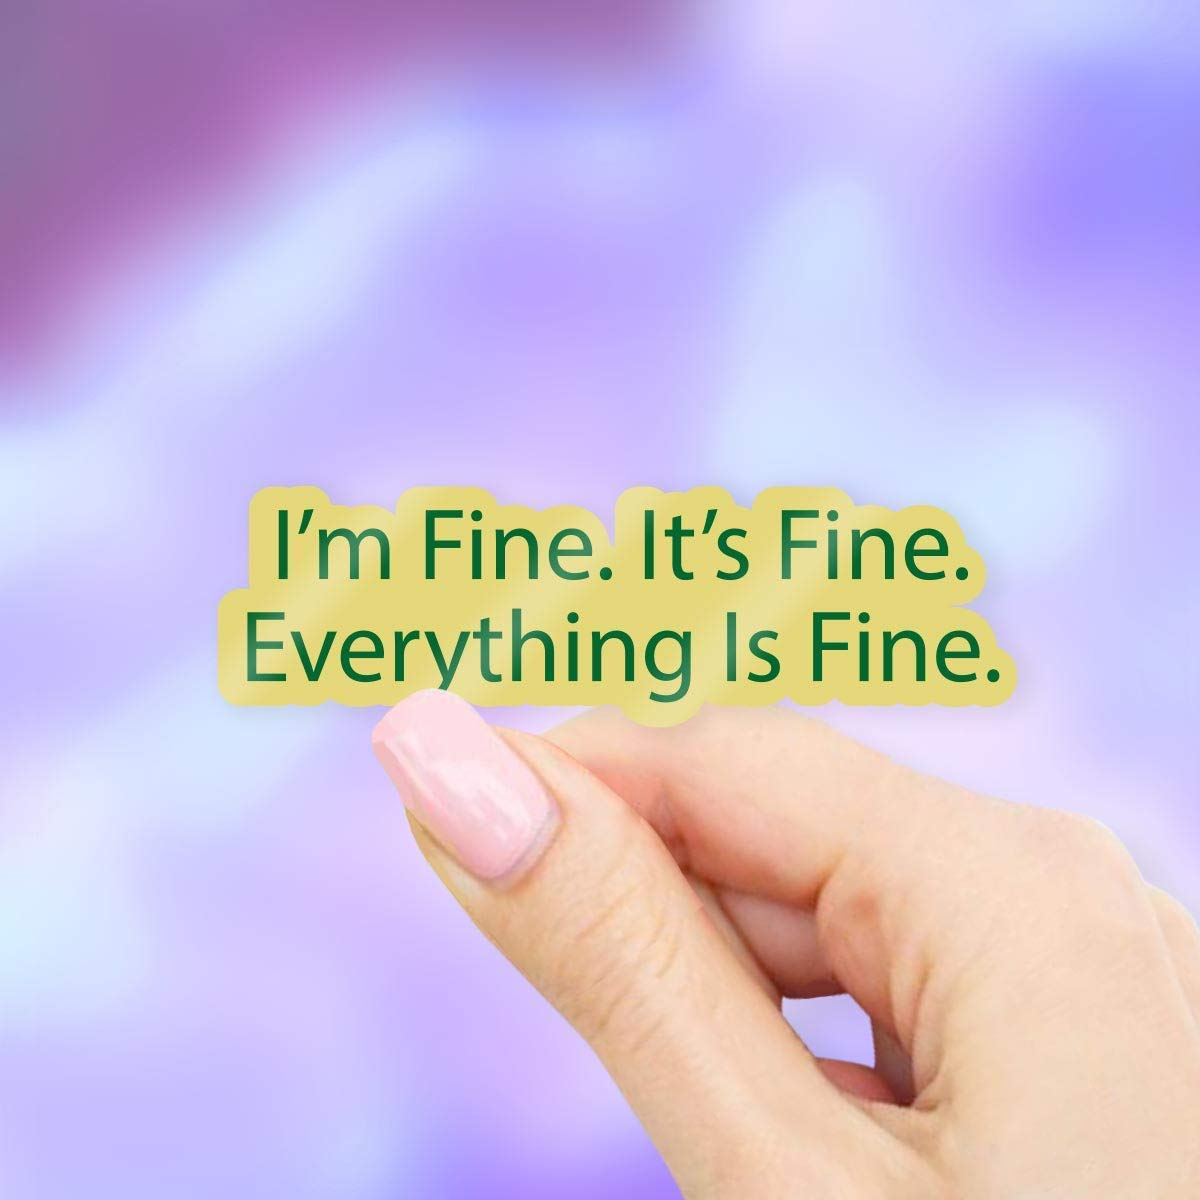 Windows and Water Bottles Im Fine Its Fine Everything Is Fine Vinyl Sticker for Laptops